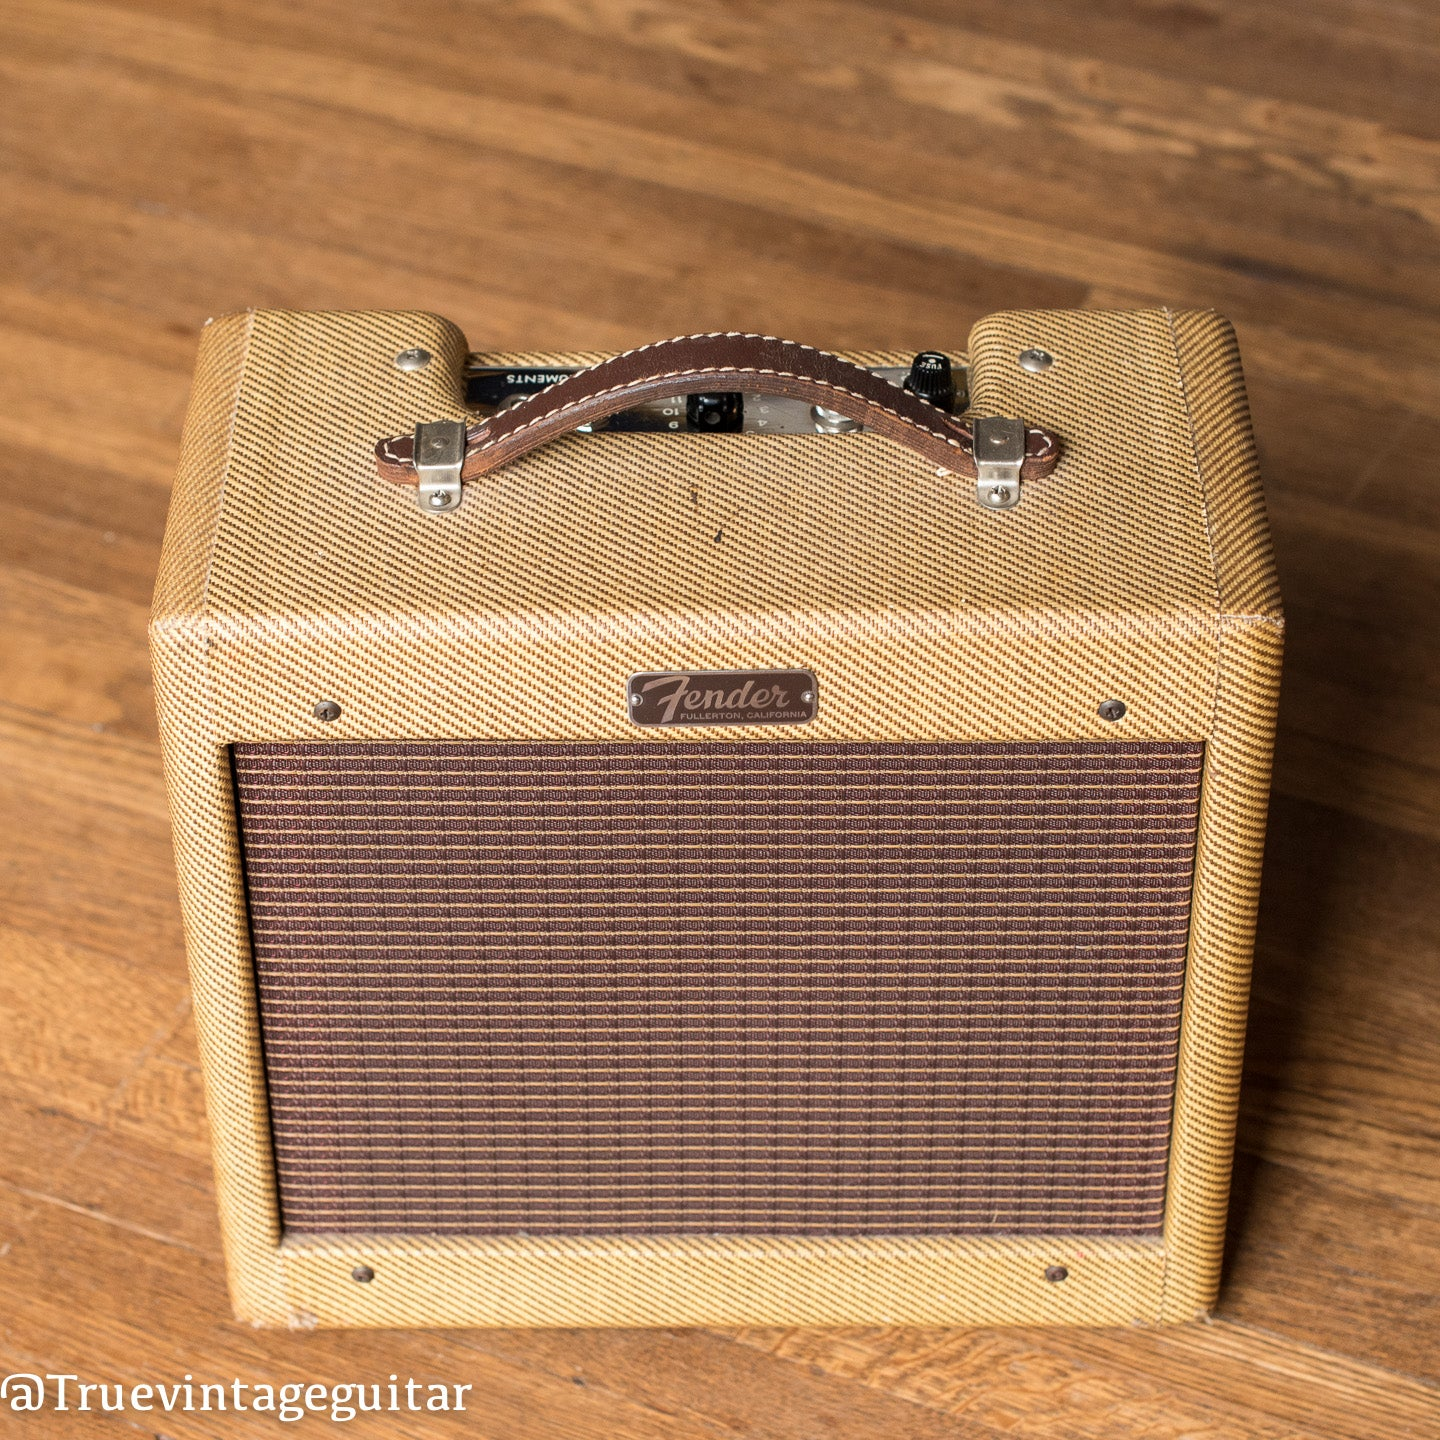 1963 Fender Champ Amp tweed original leather handle